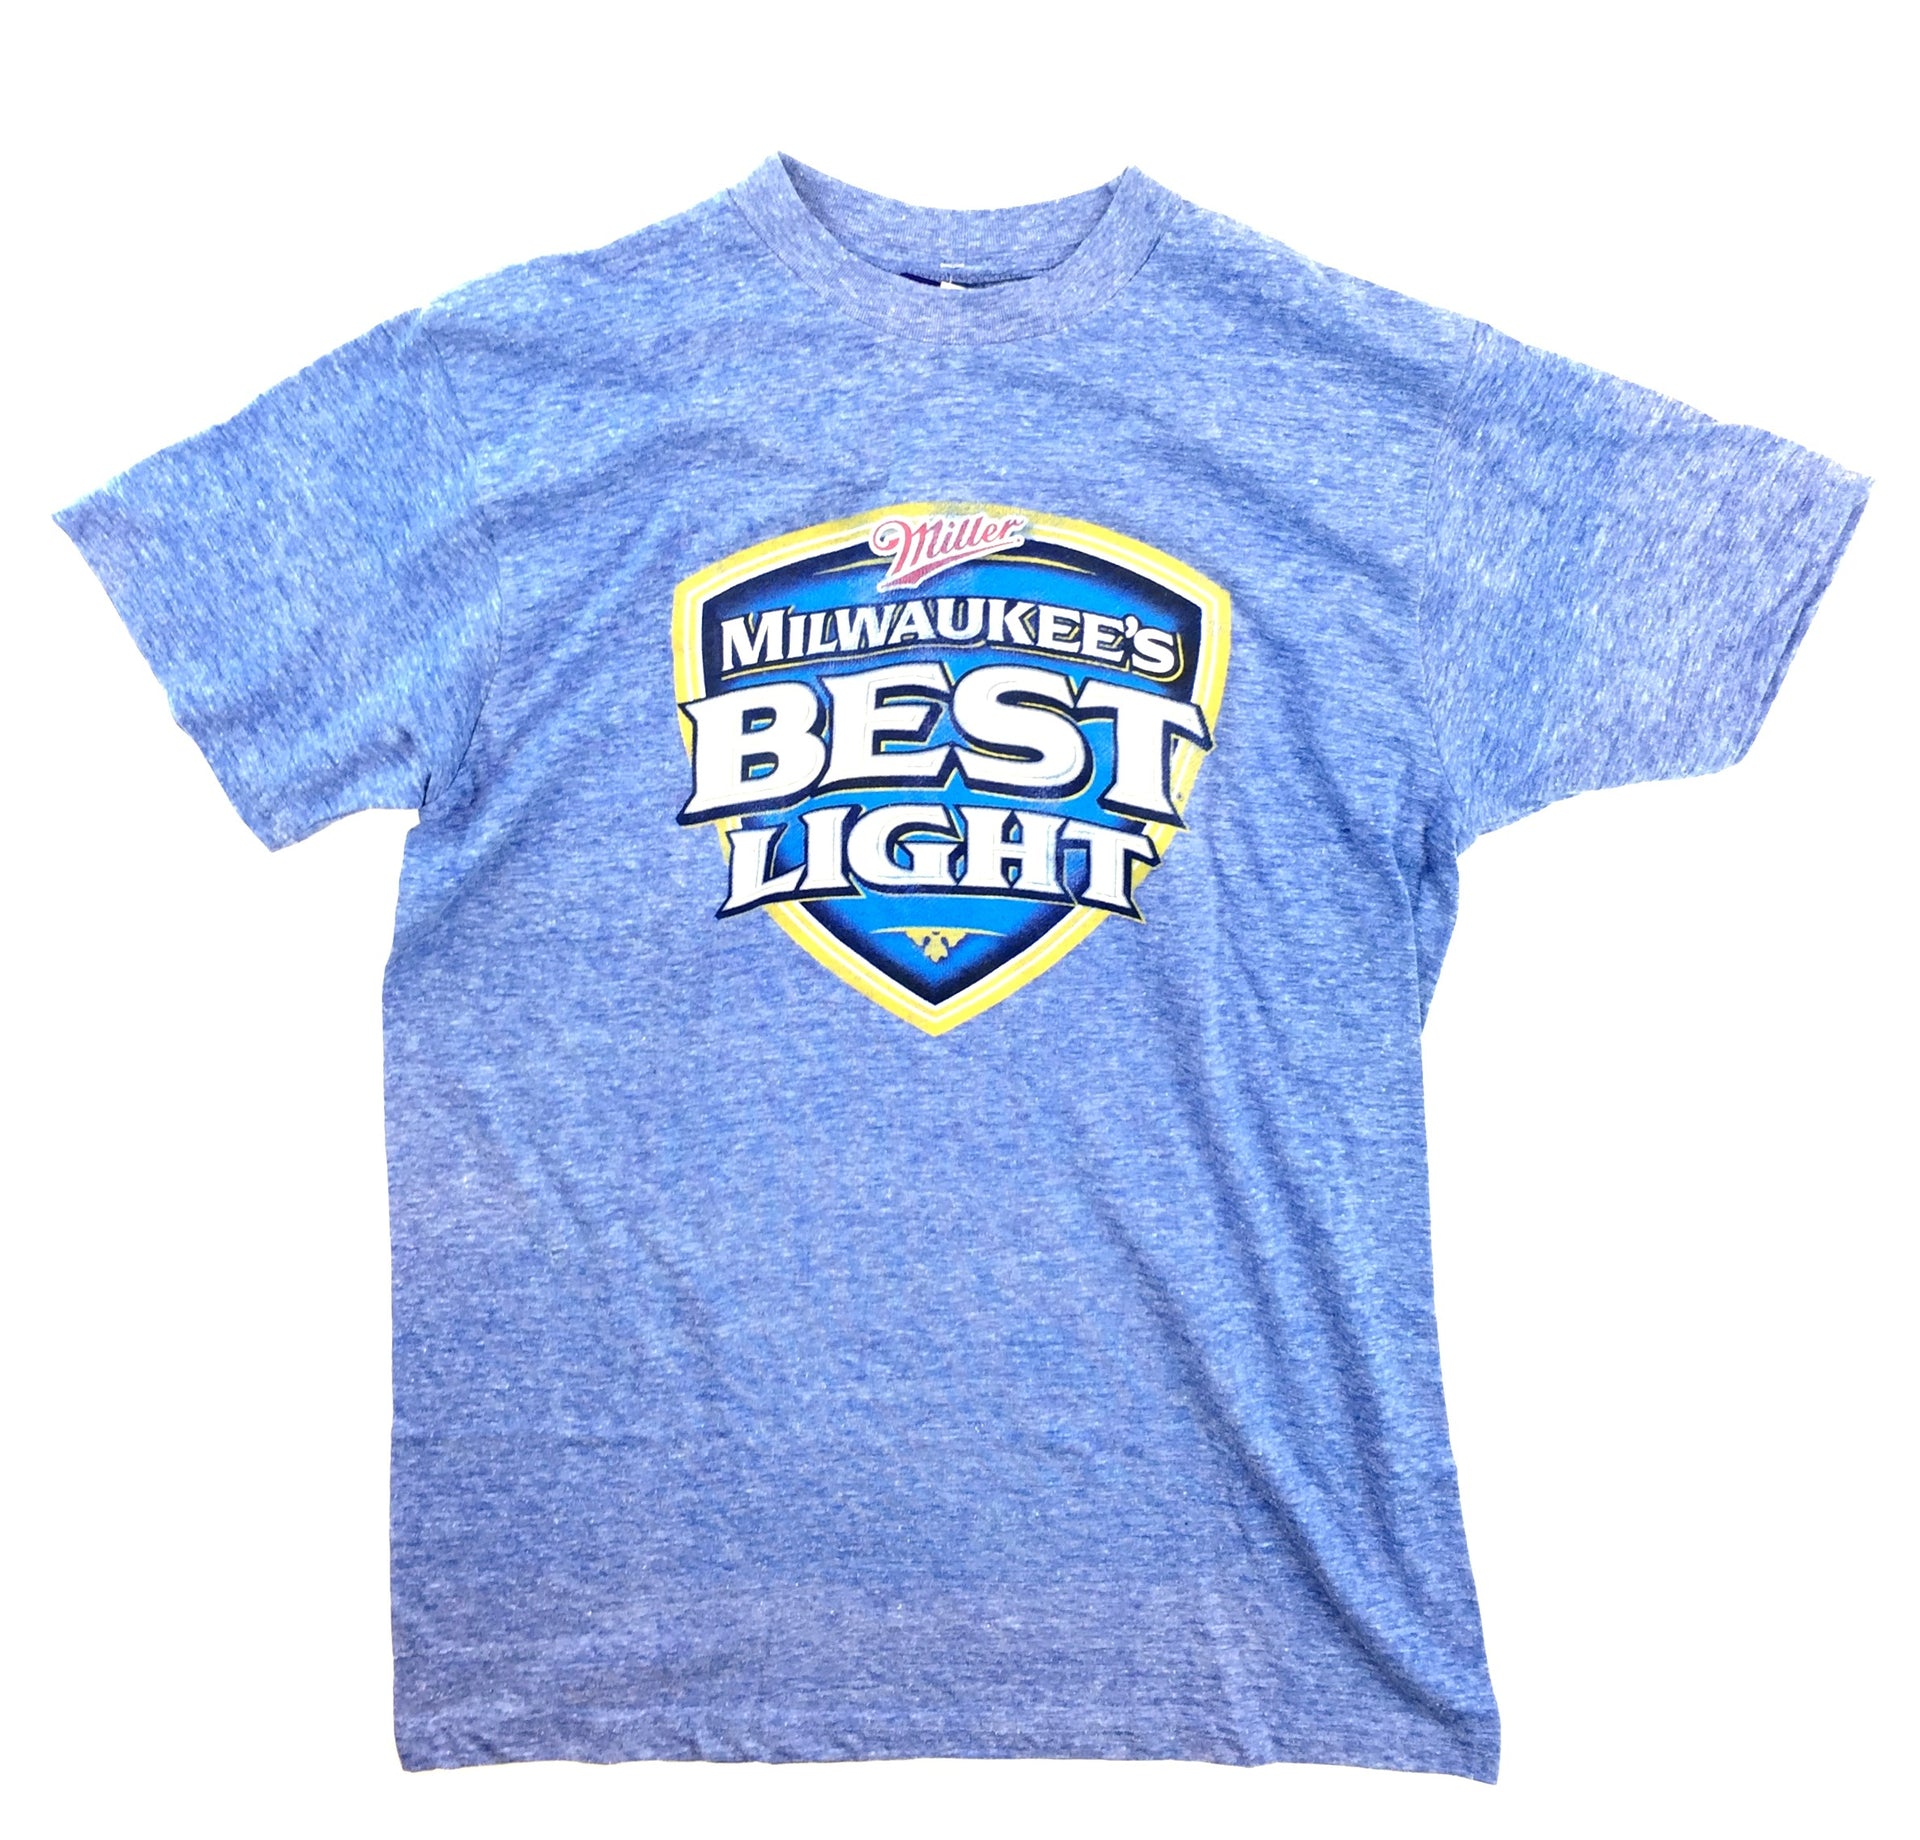 Milwaukees Best Blue Lightweight Tee